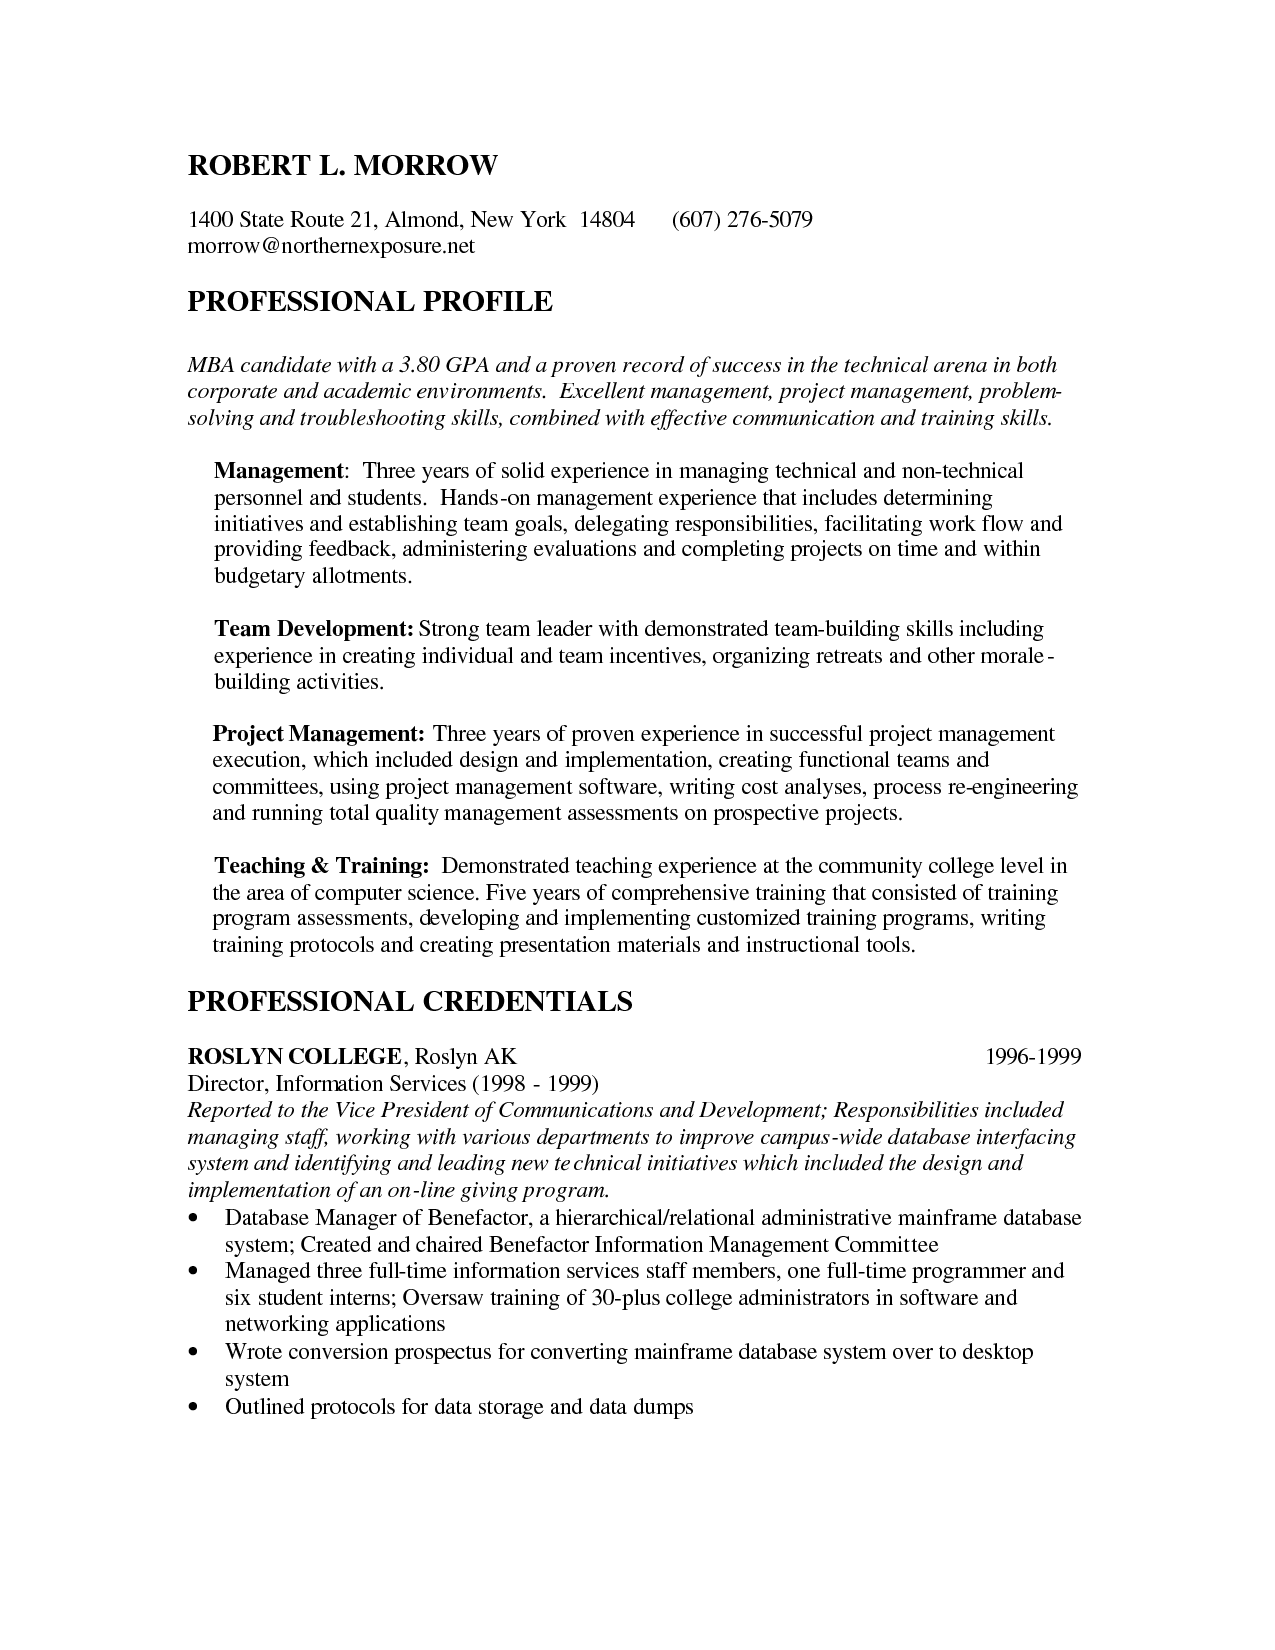 explore sample resume resume examples and more - Sample Resume Mba Marketing Experience